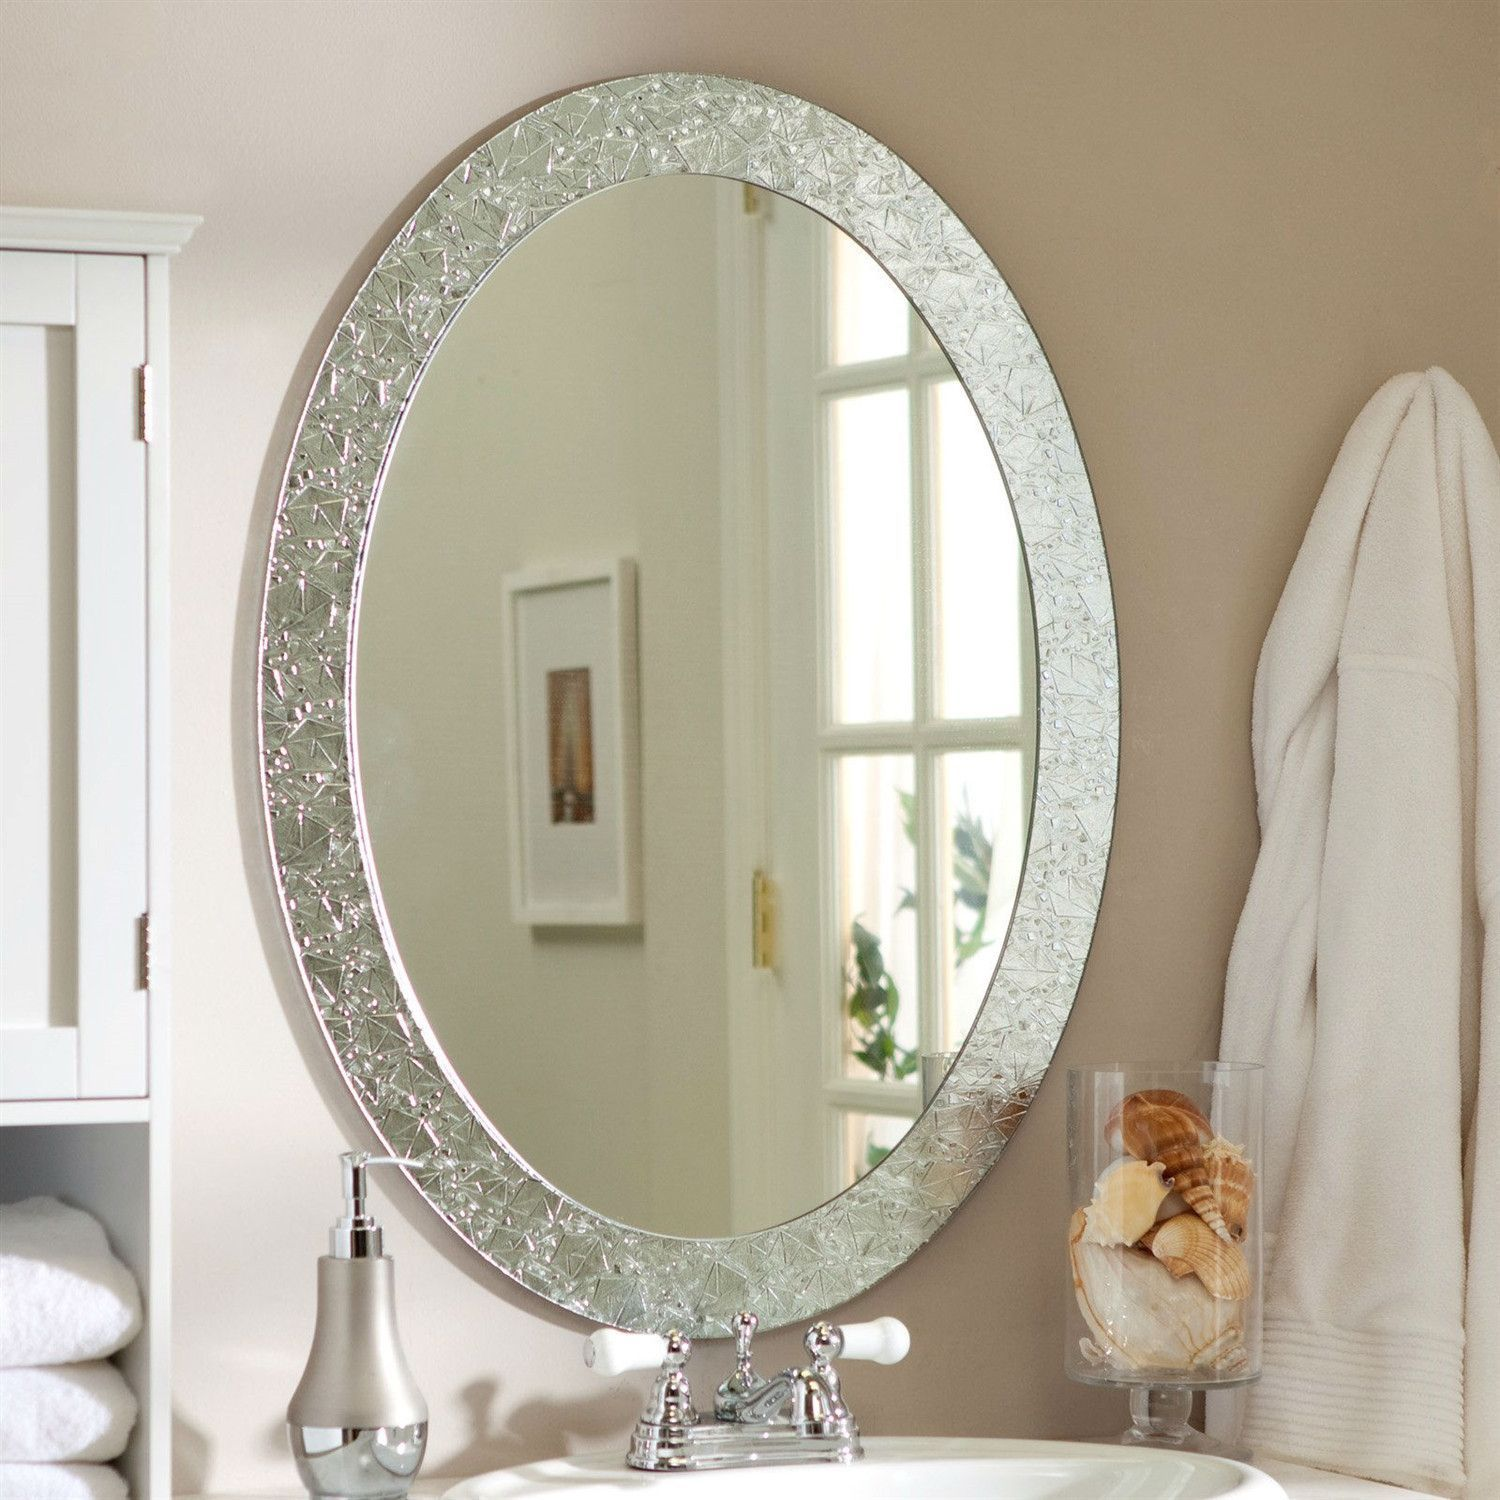 mirror bathrooms mirrors kitchen designer at products bathroom wall bath md wood pin timonium for